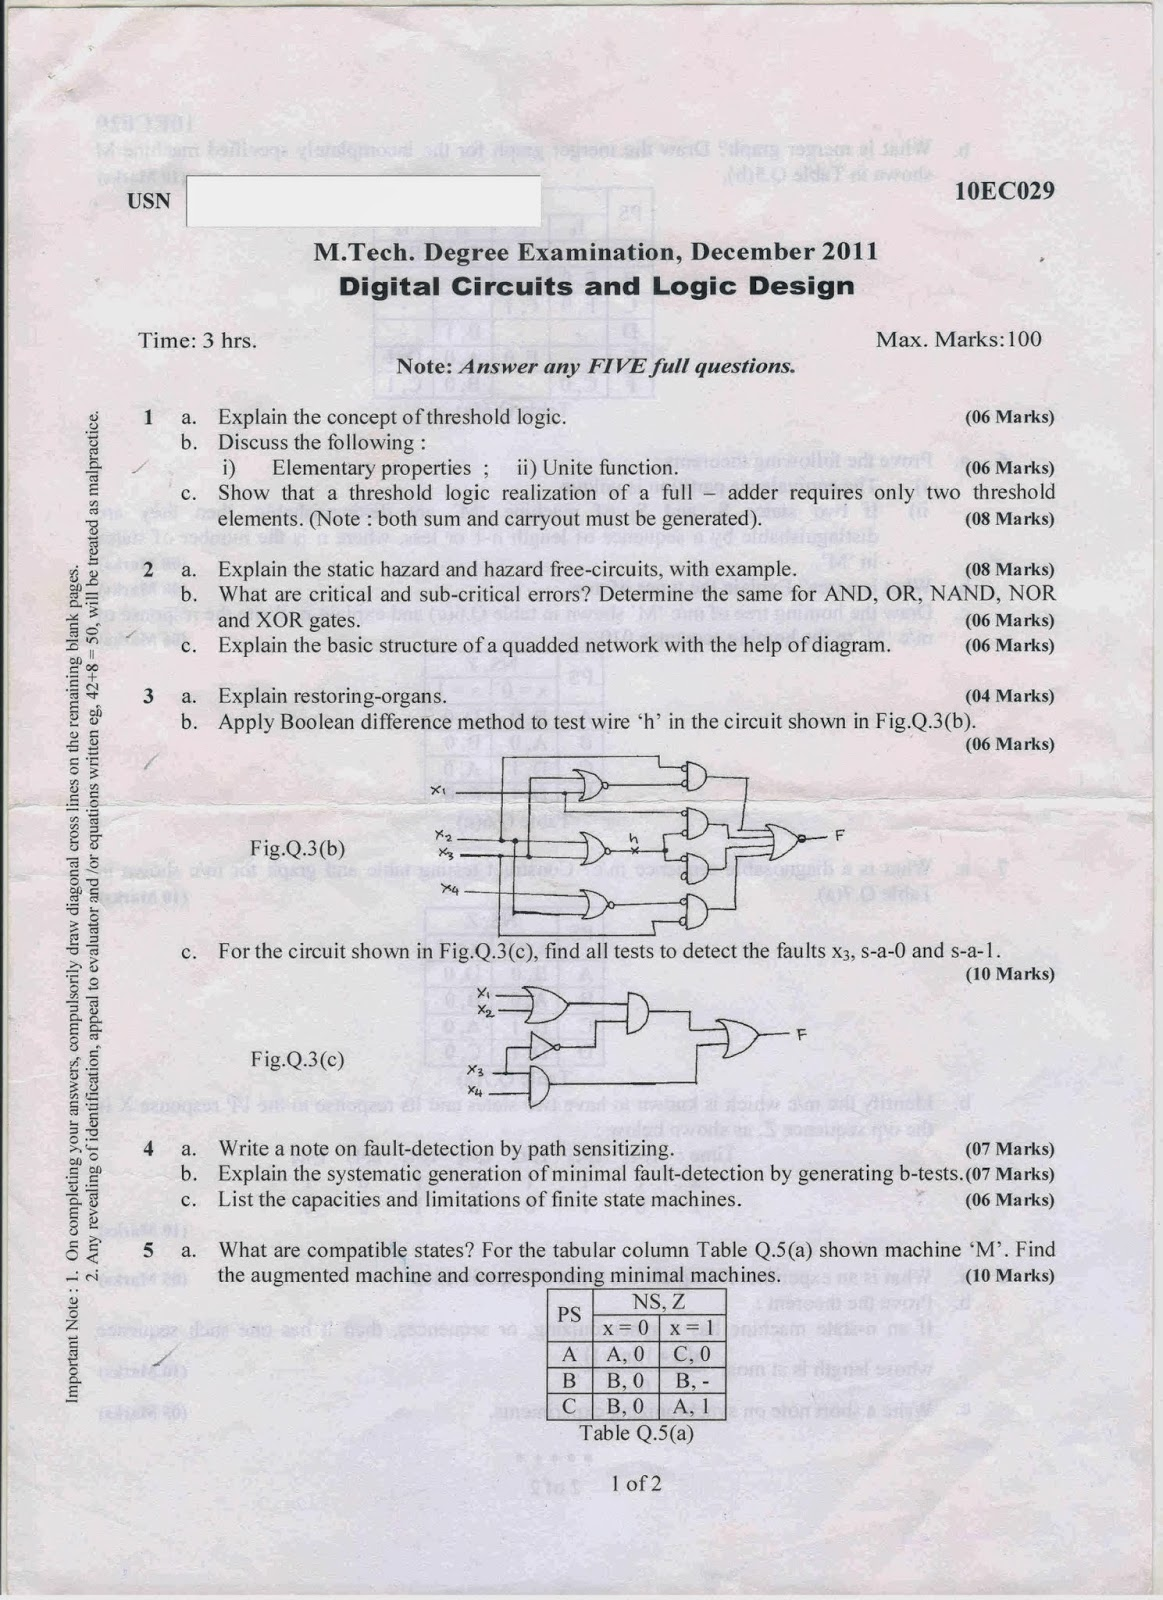 Civil Engineering VTU CBCS Notes - VTUPulse